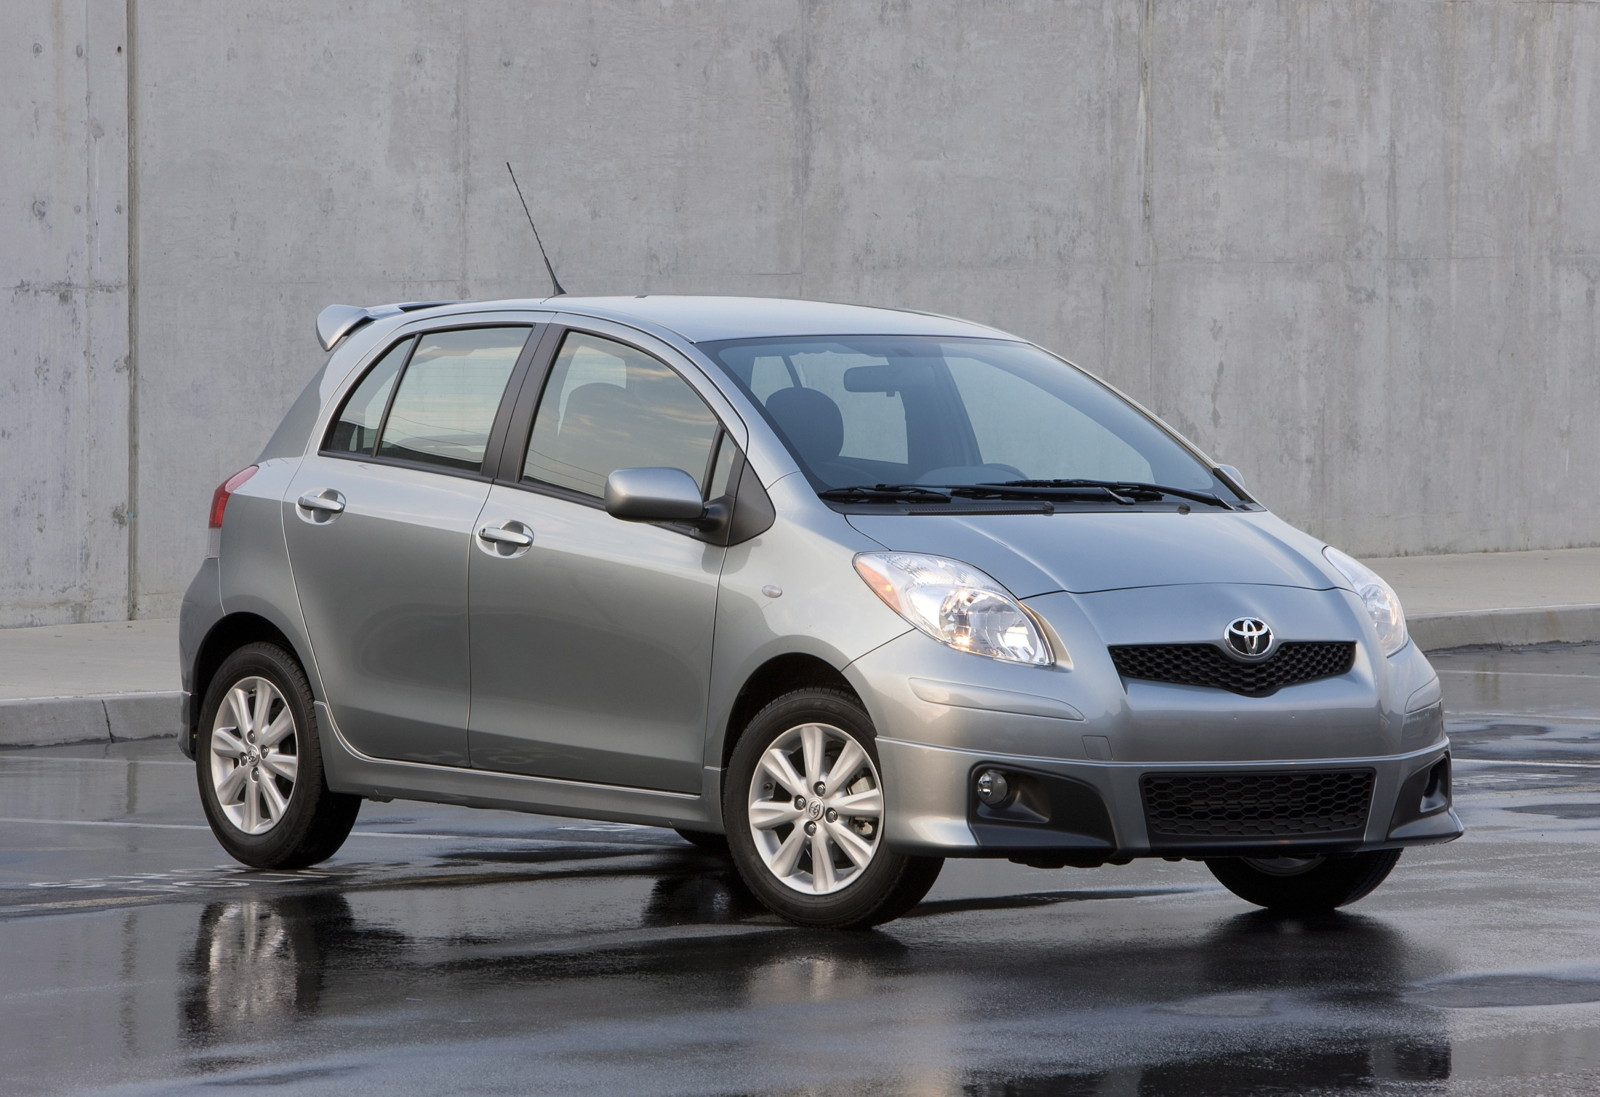 2010 Toyota Yaris Review, Ratings, Specs, Prices, and Photos - The Car Connection